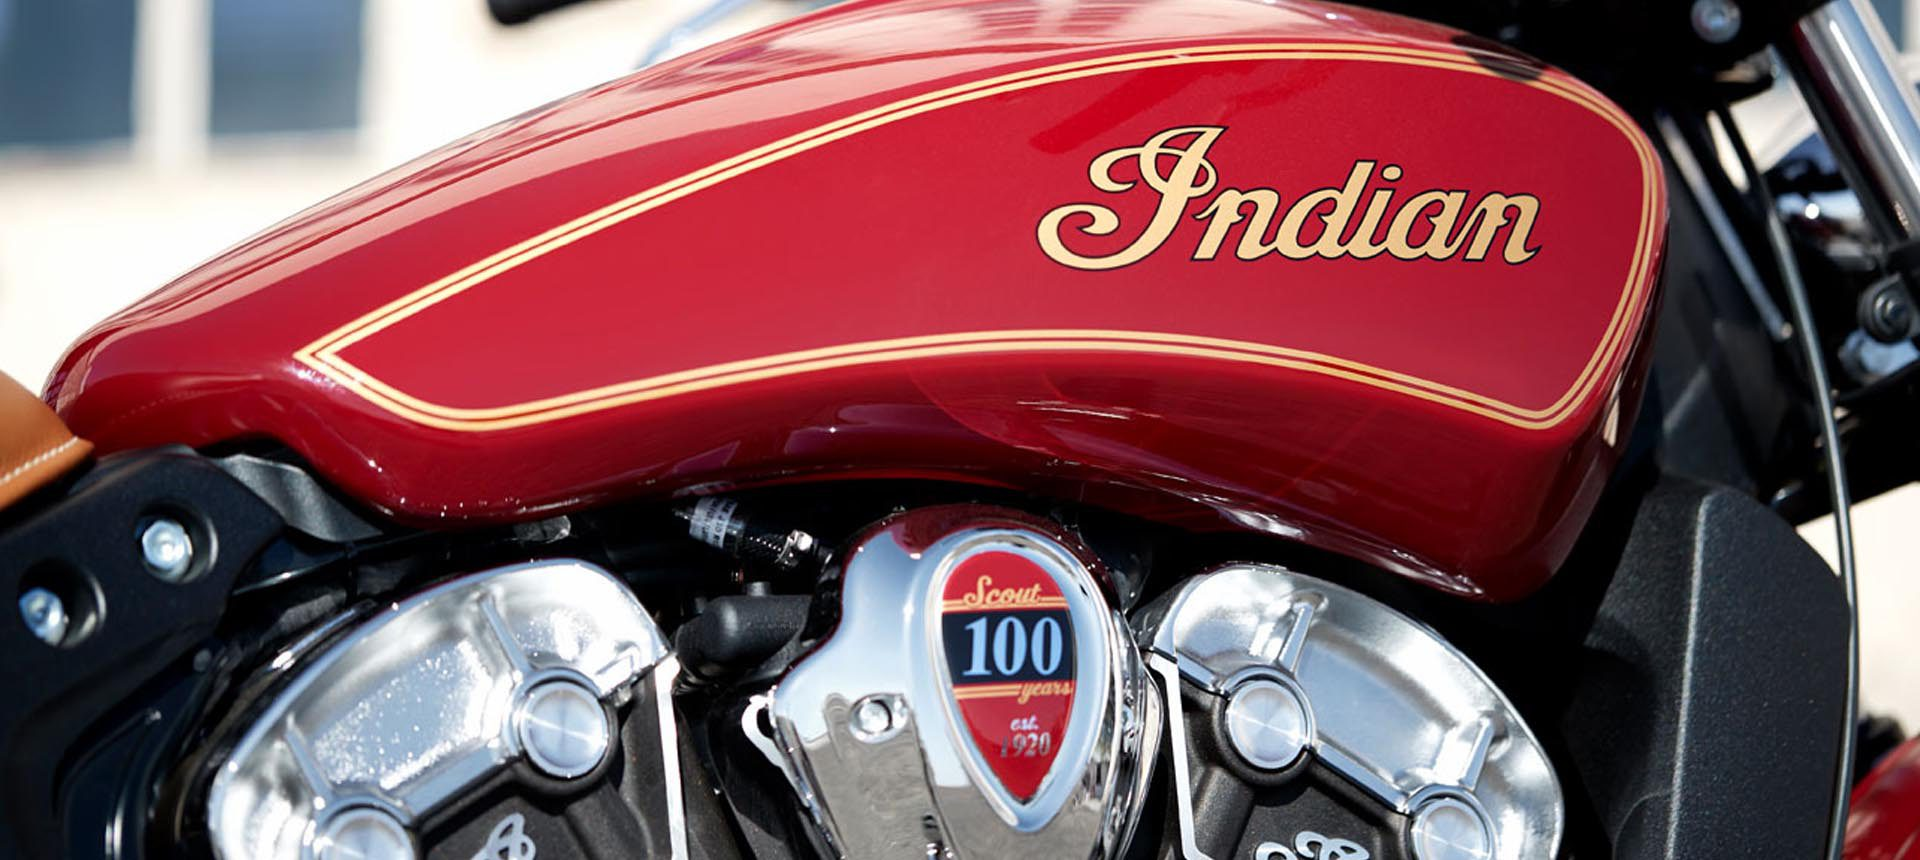 2020 SCOUT 100th ANNIVERSARY